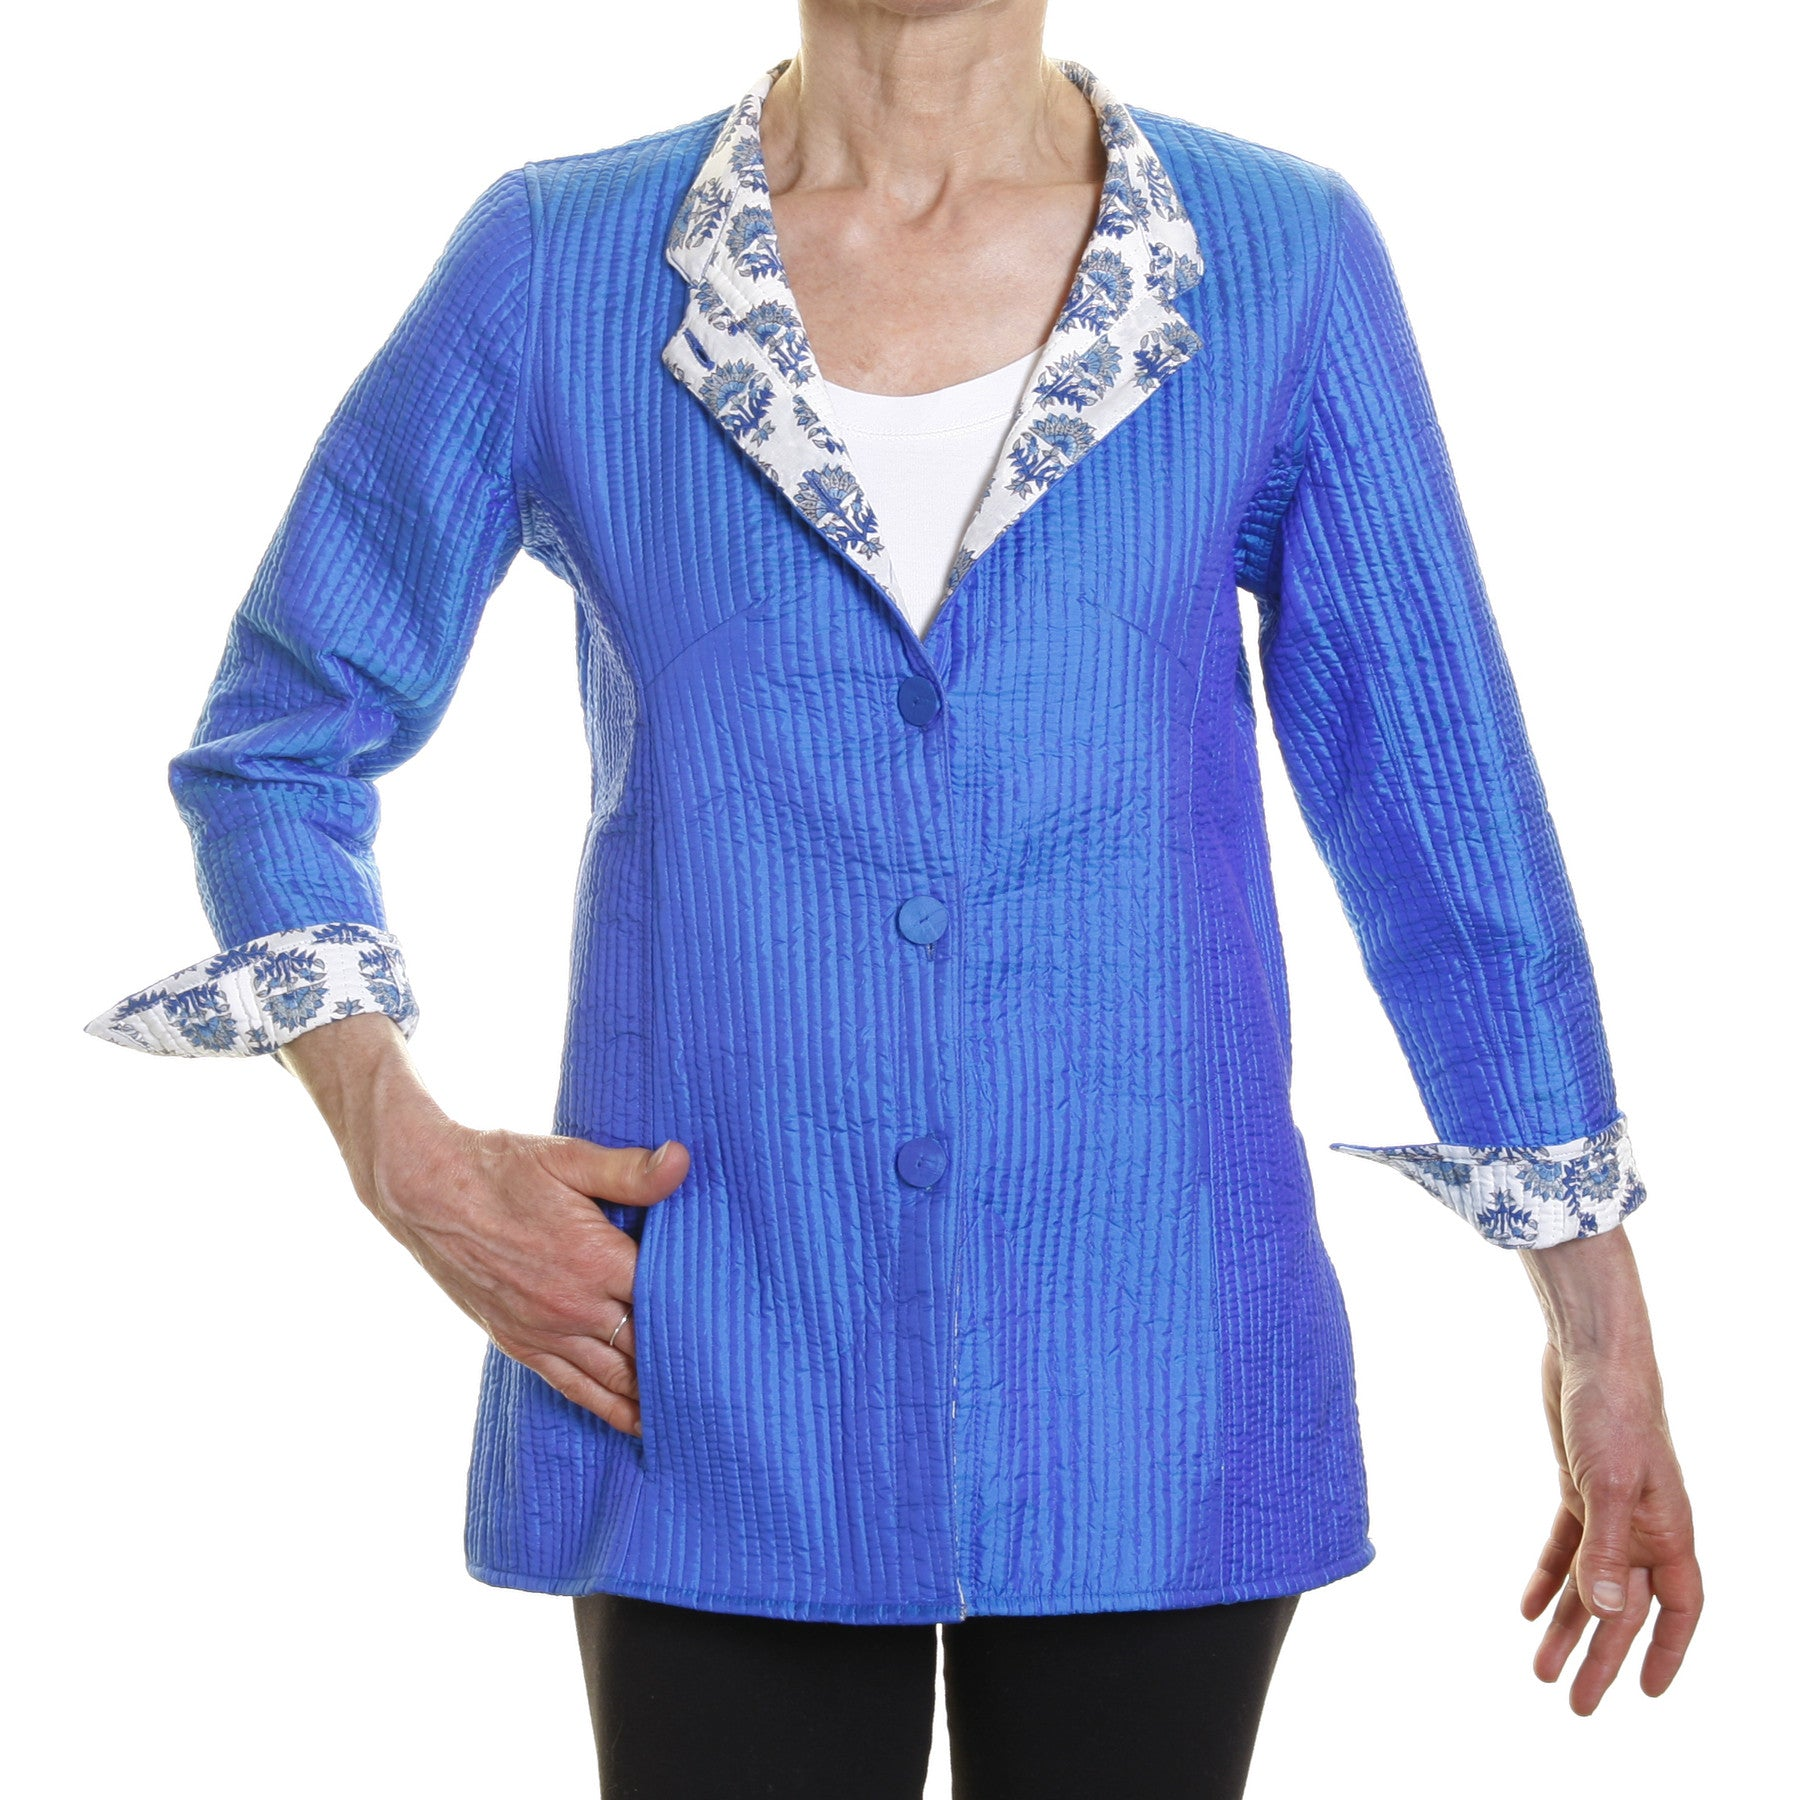 Silk Opera Blazer - Reversible Peacock Blue with Blue and White Print Lining